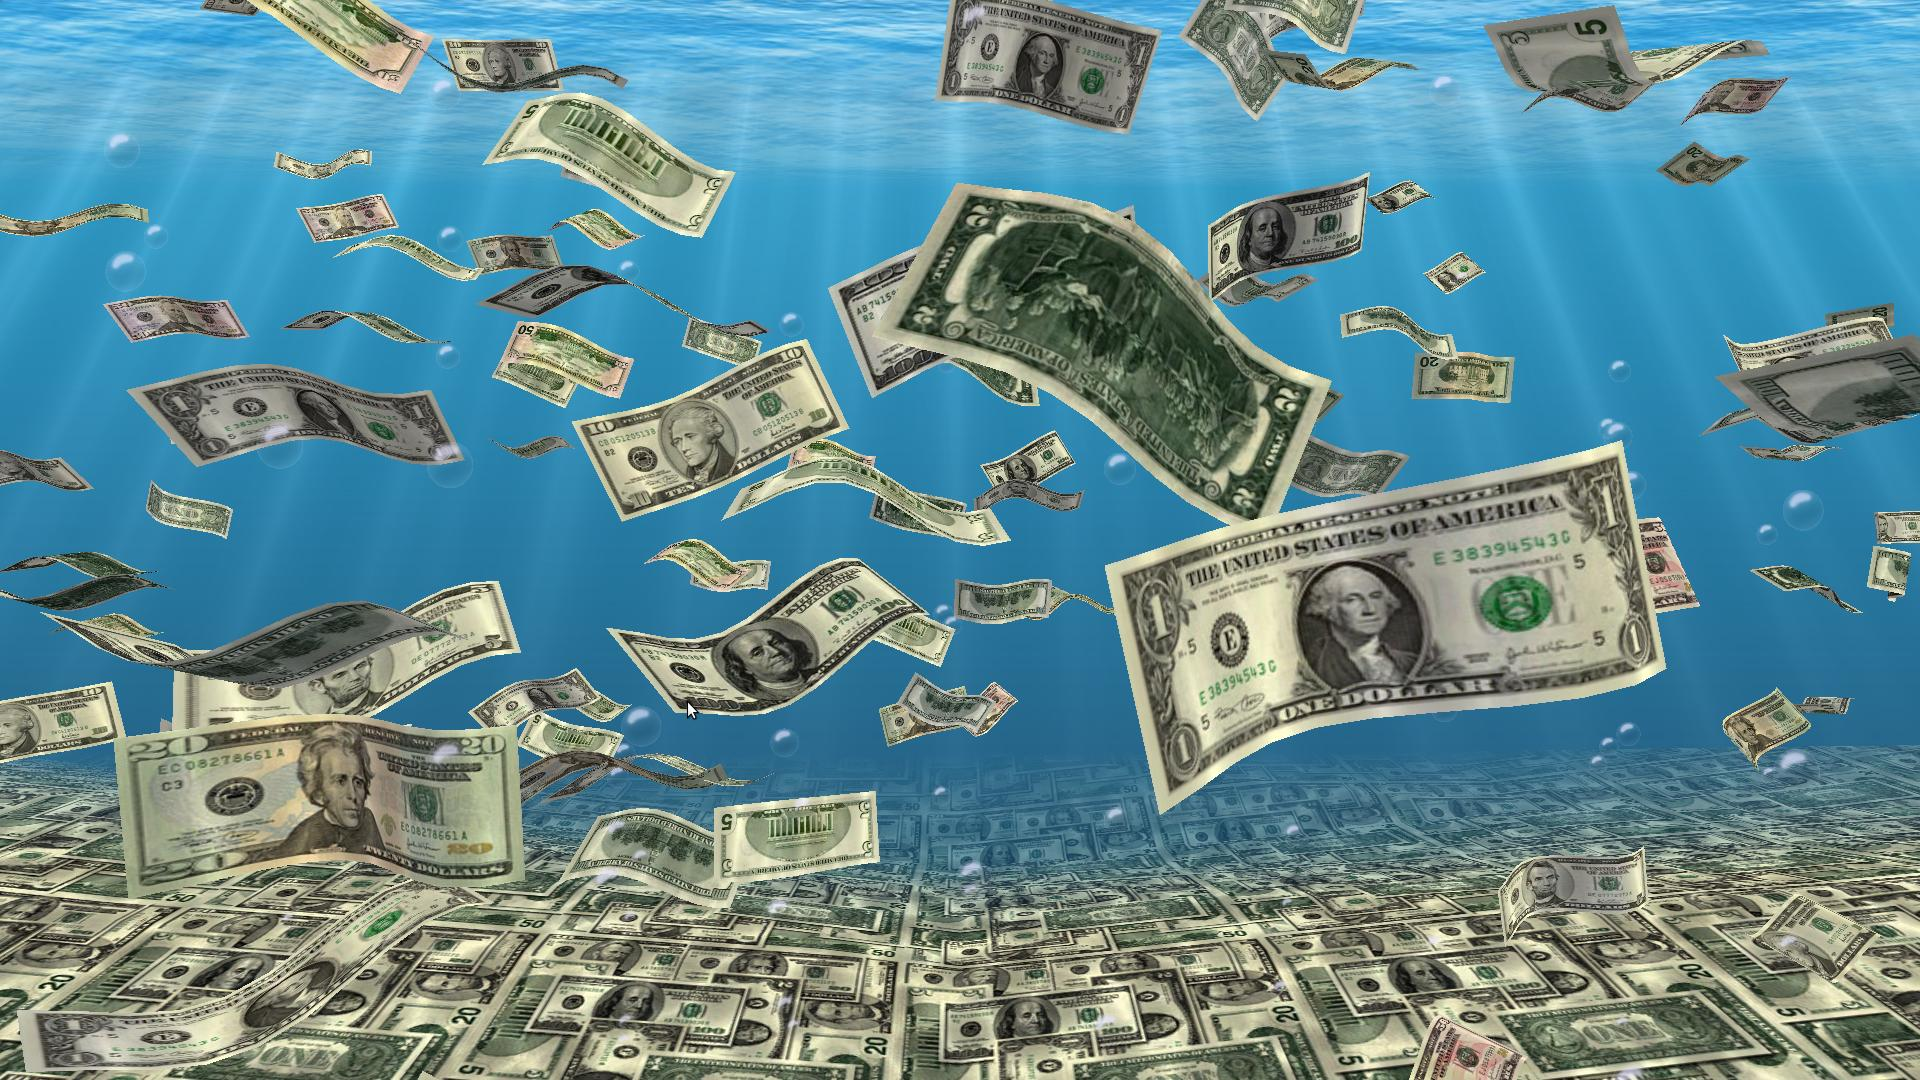 1920x1080 falling money sea bottom desktop pc and mac wallpaper gumiabroncs Gallery